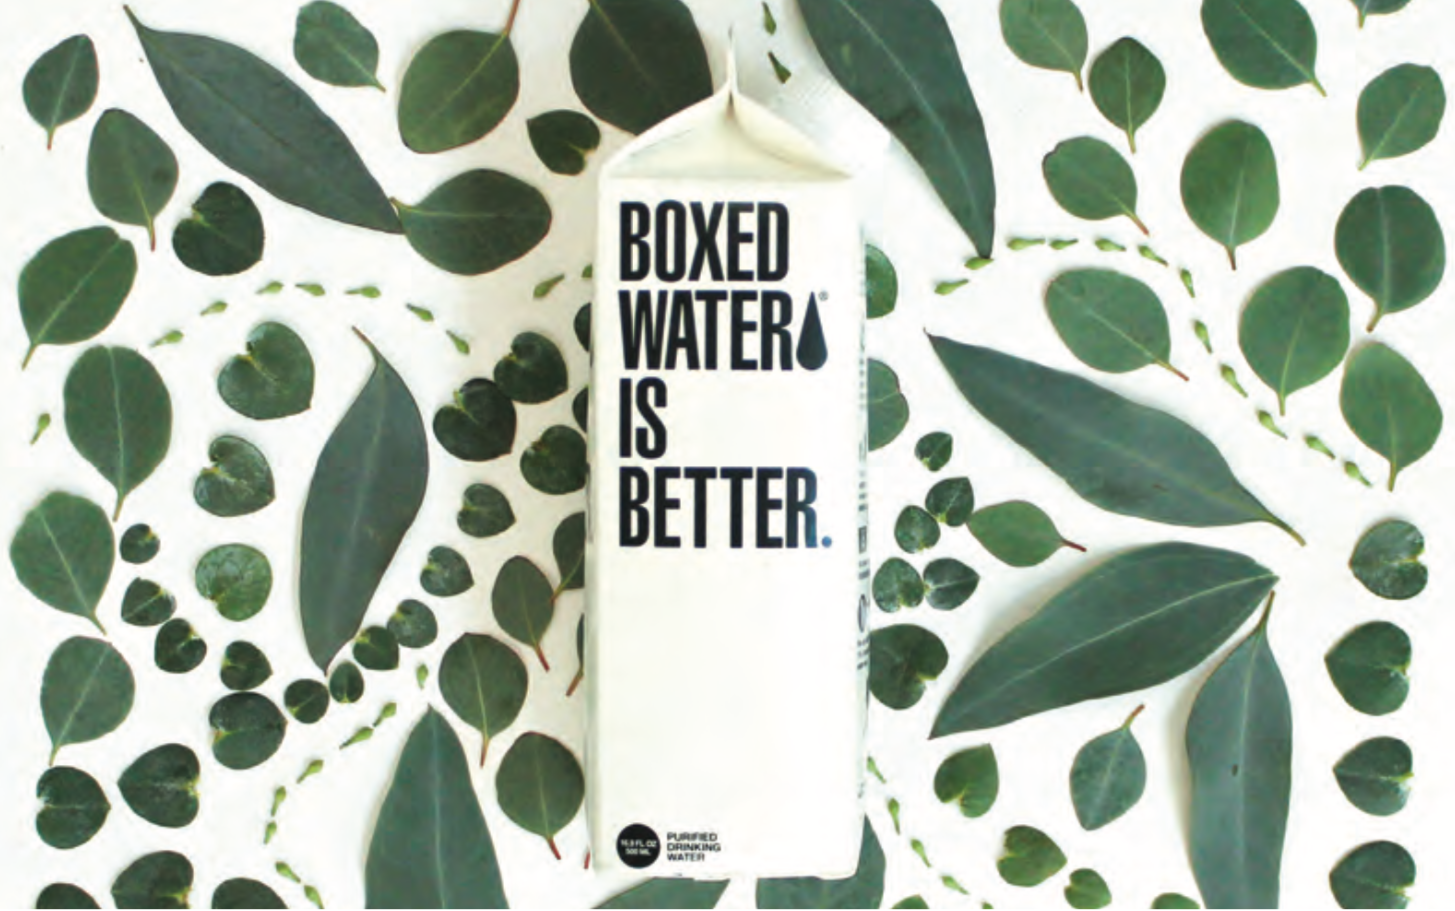 Pensare in modo diverso - fotografo Boxed Water Is Better